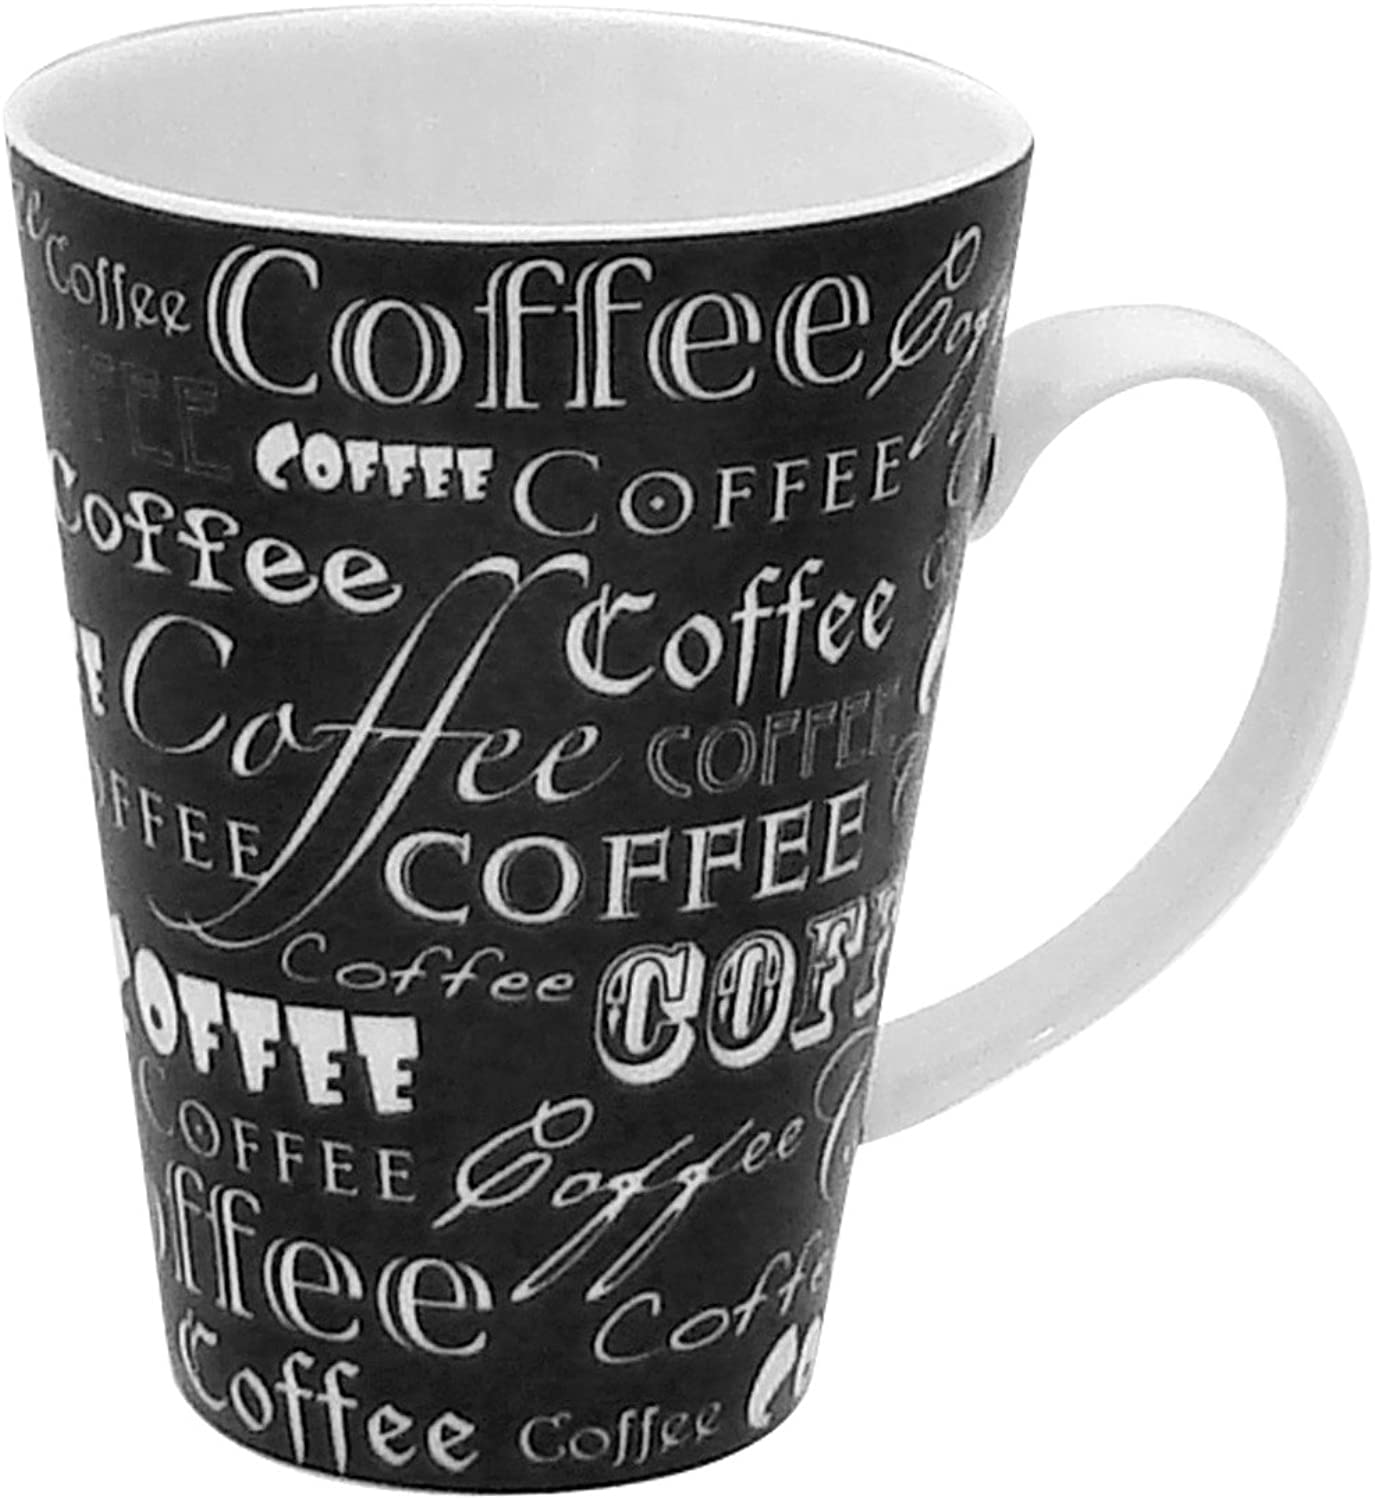 Zrike Brands Coffee Words On Mug, noir, Set of 4 by RSquarouge